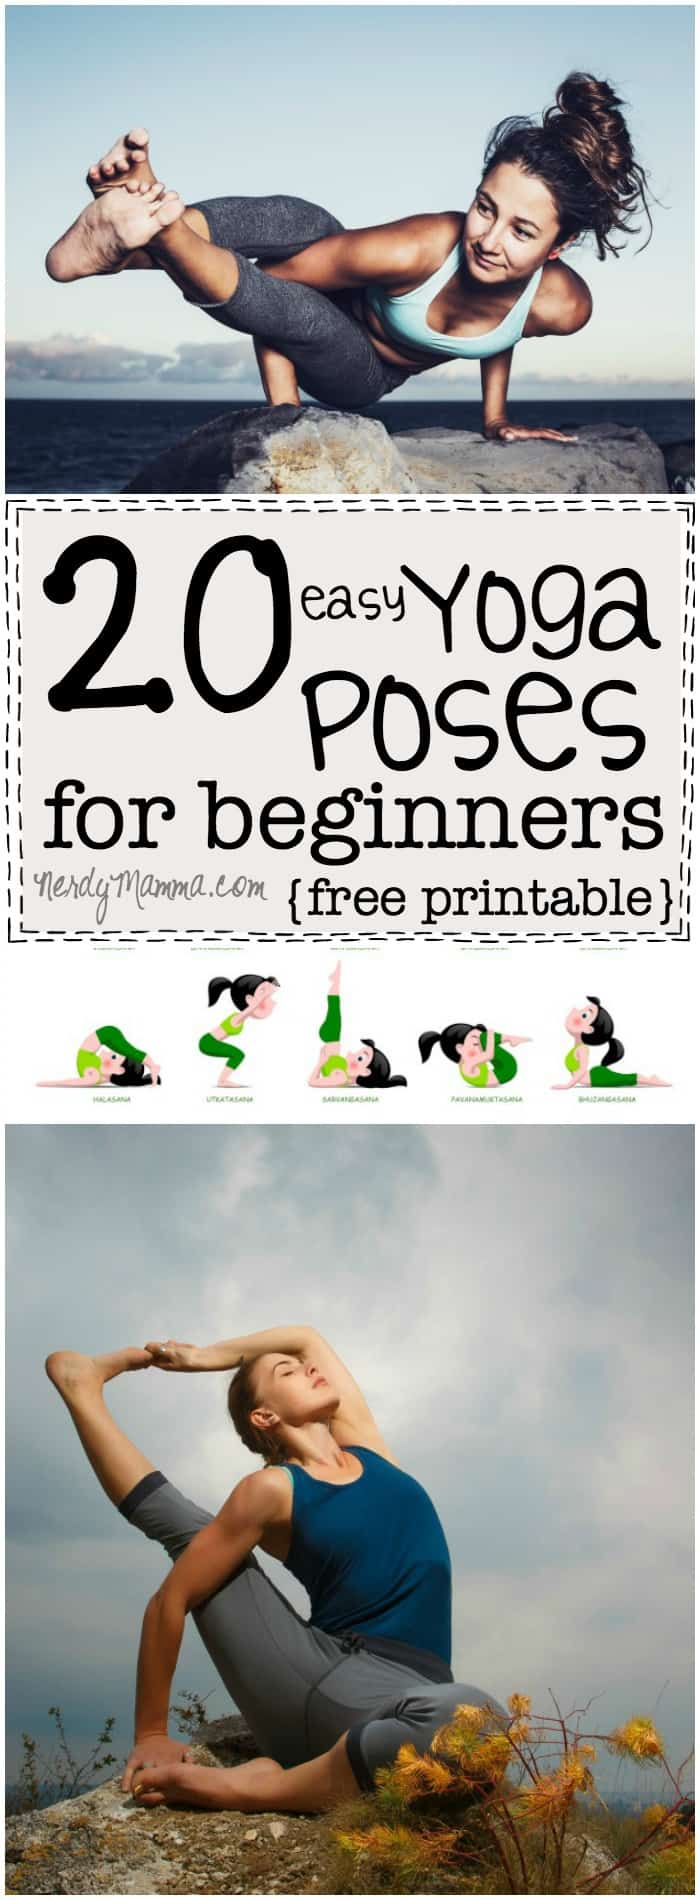 20 Simple Nail Designs For Beginners: 20 Easy Yoga Poses For Beginners With A Free Printable